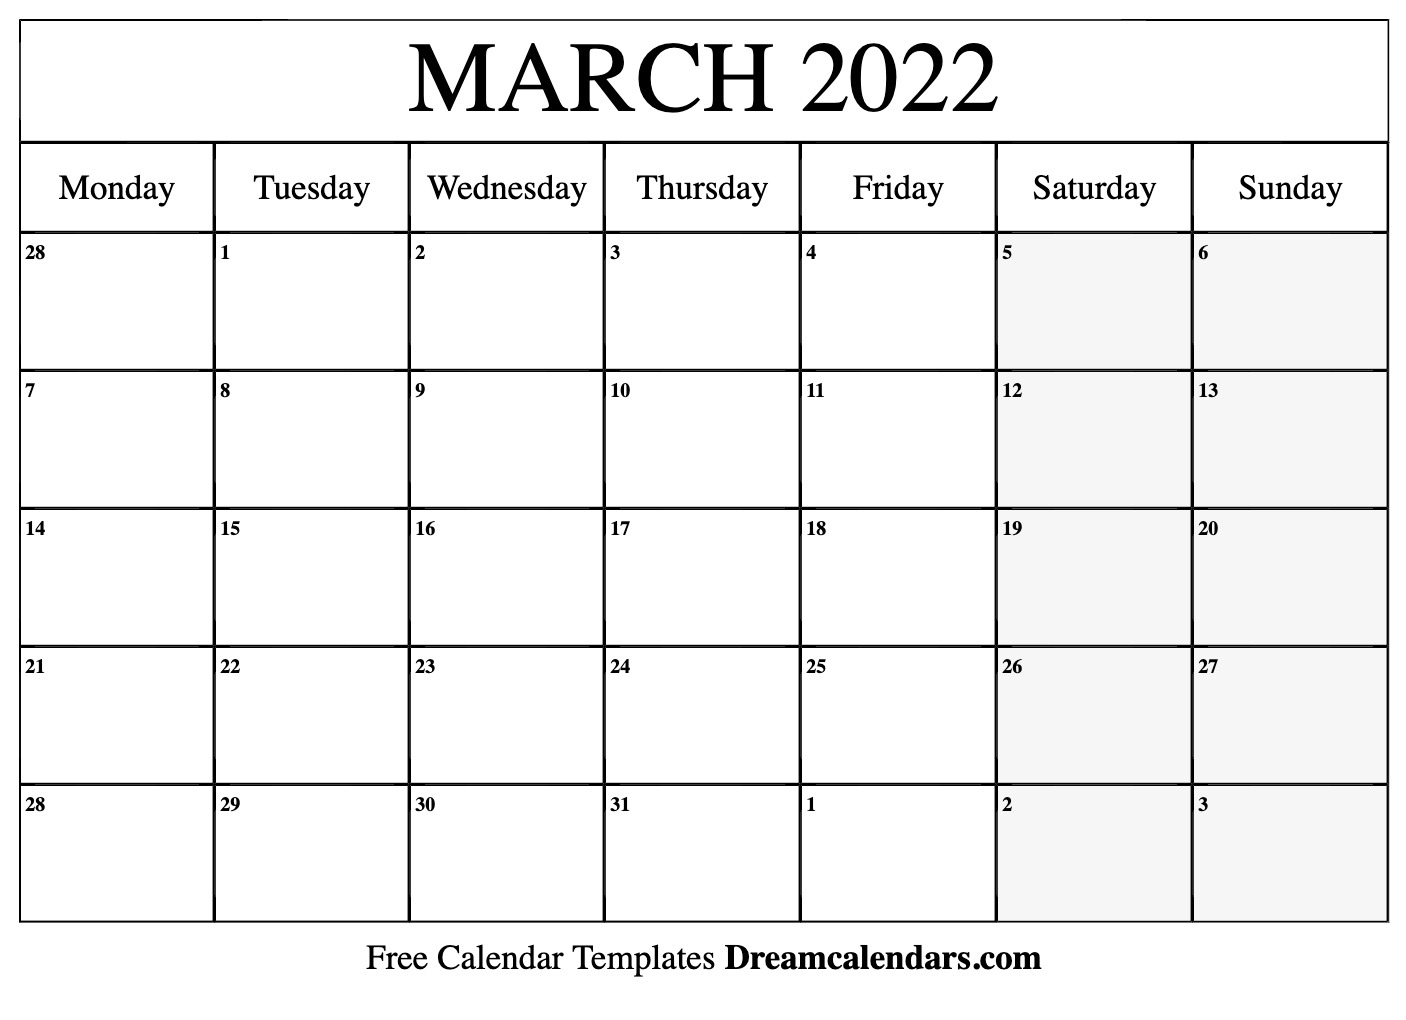 March 2022 Calendar   Free Blank Printable Templates With Regard To February March Calendar 2022